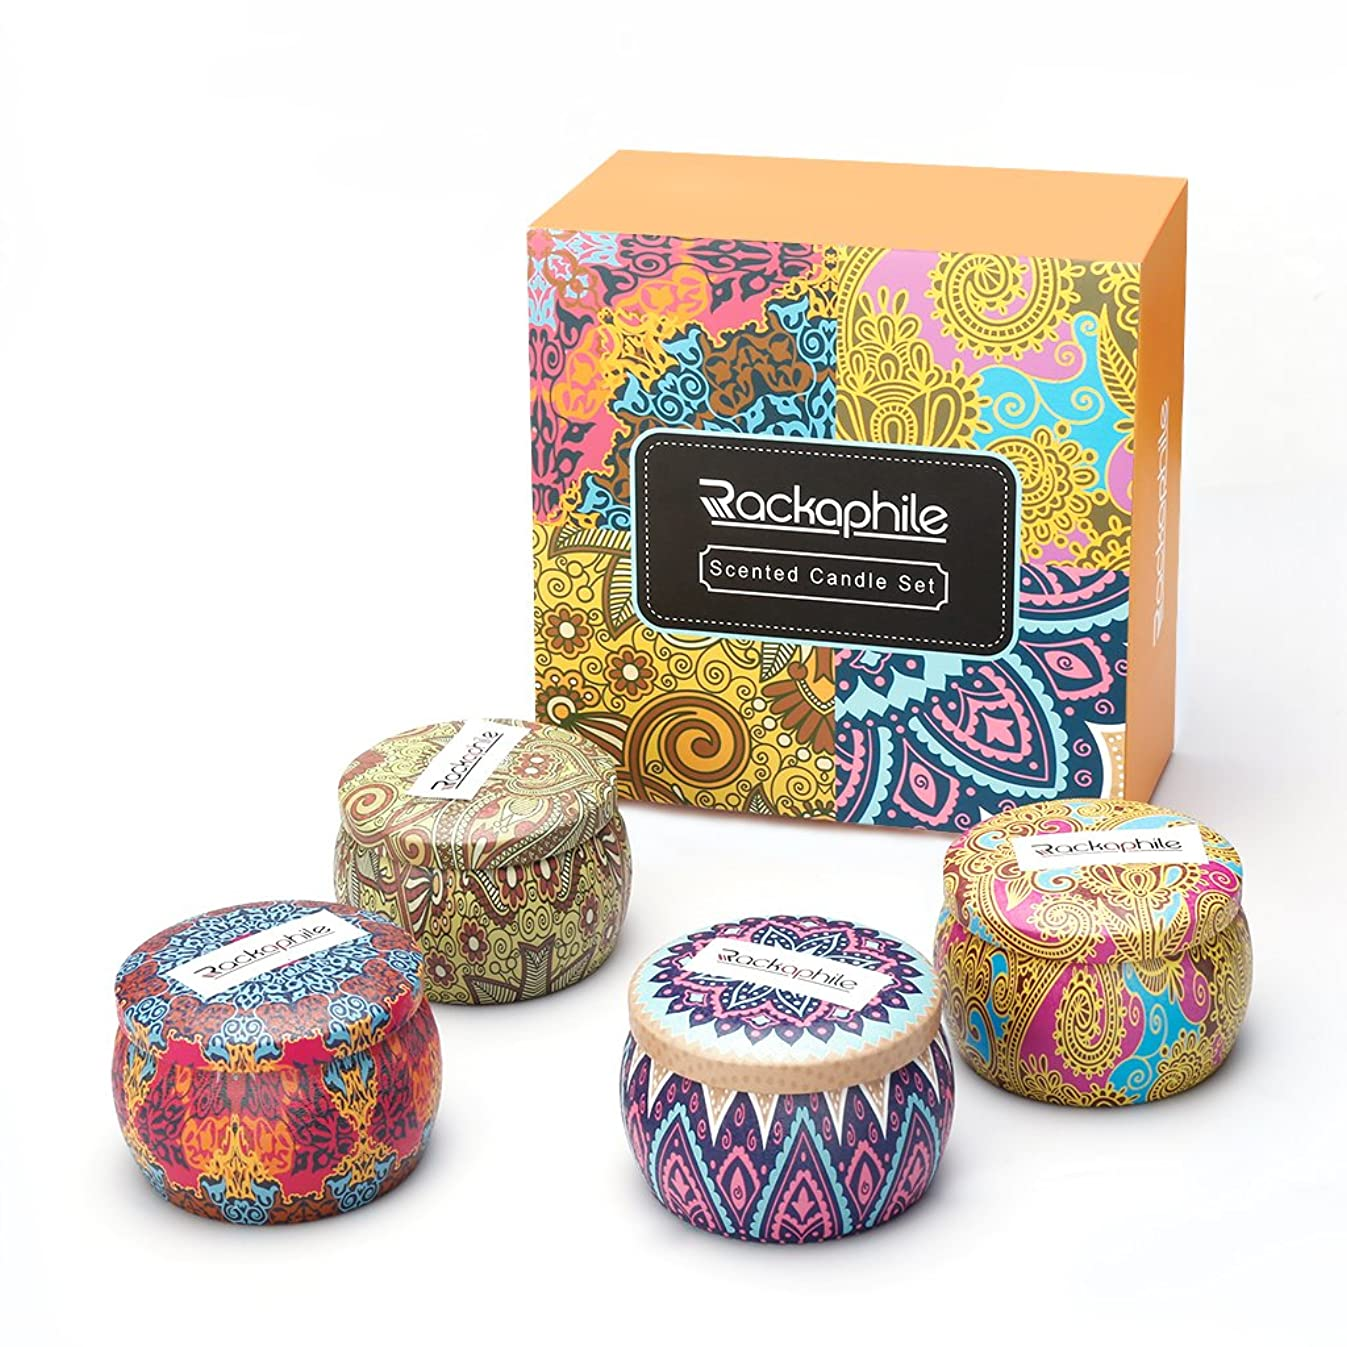 Rackaphile 4 Oz Pure Soy Wax Travel Tin Scented Candle Set, Lead-Free Wick, Aromatherapy Candles Rose, Lemon, Lavender and Mediterranean Fig with Christmas Gift Box